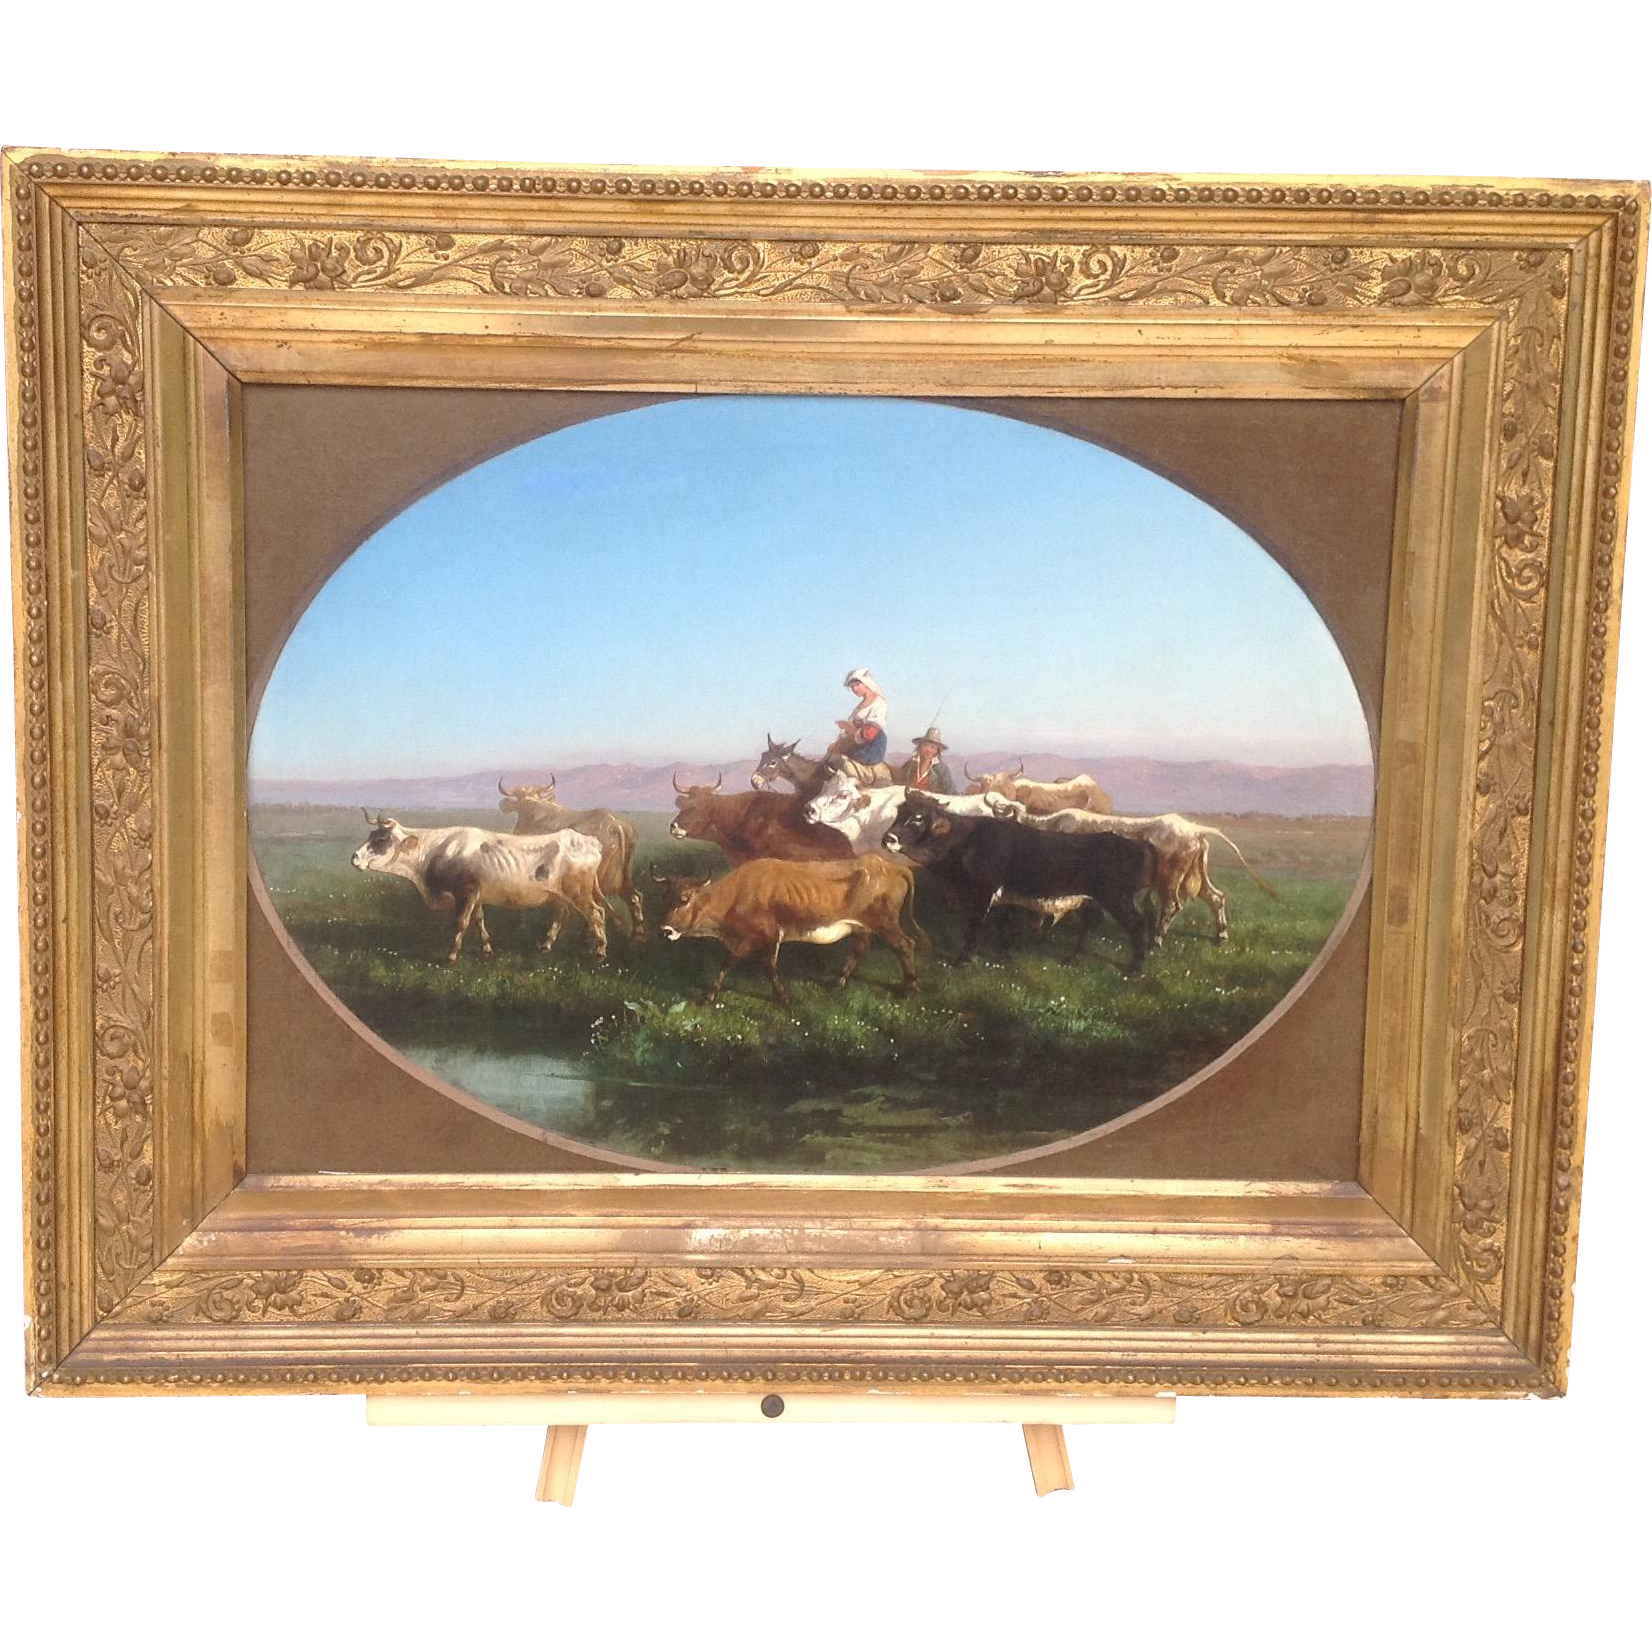 19th century European Oil Painting